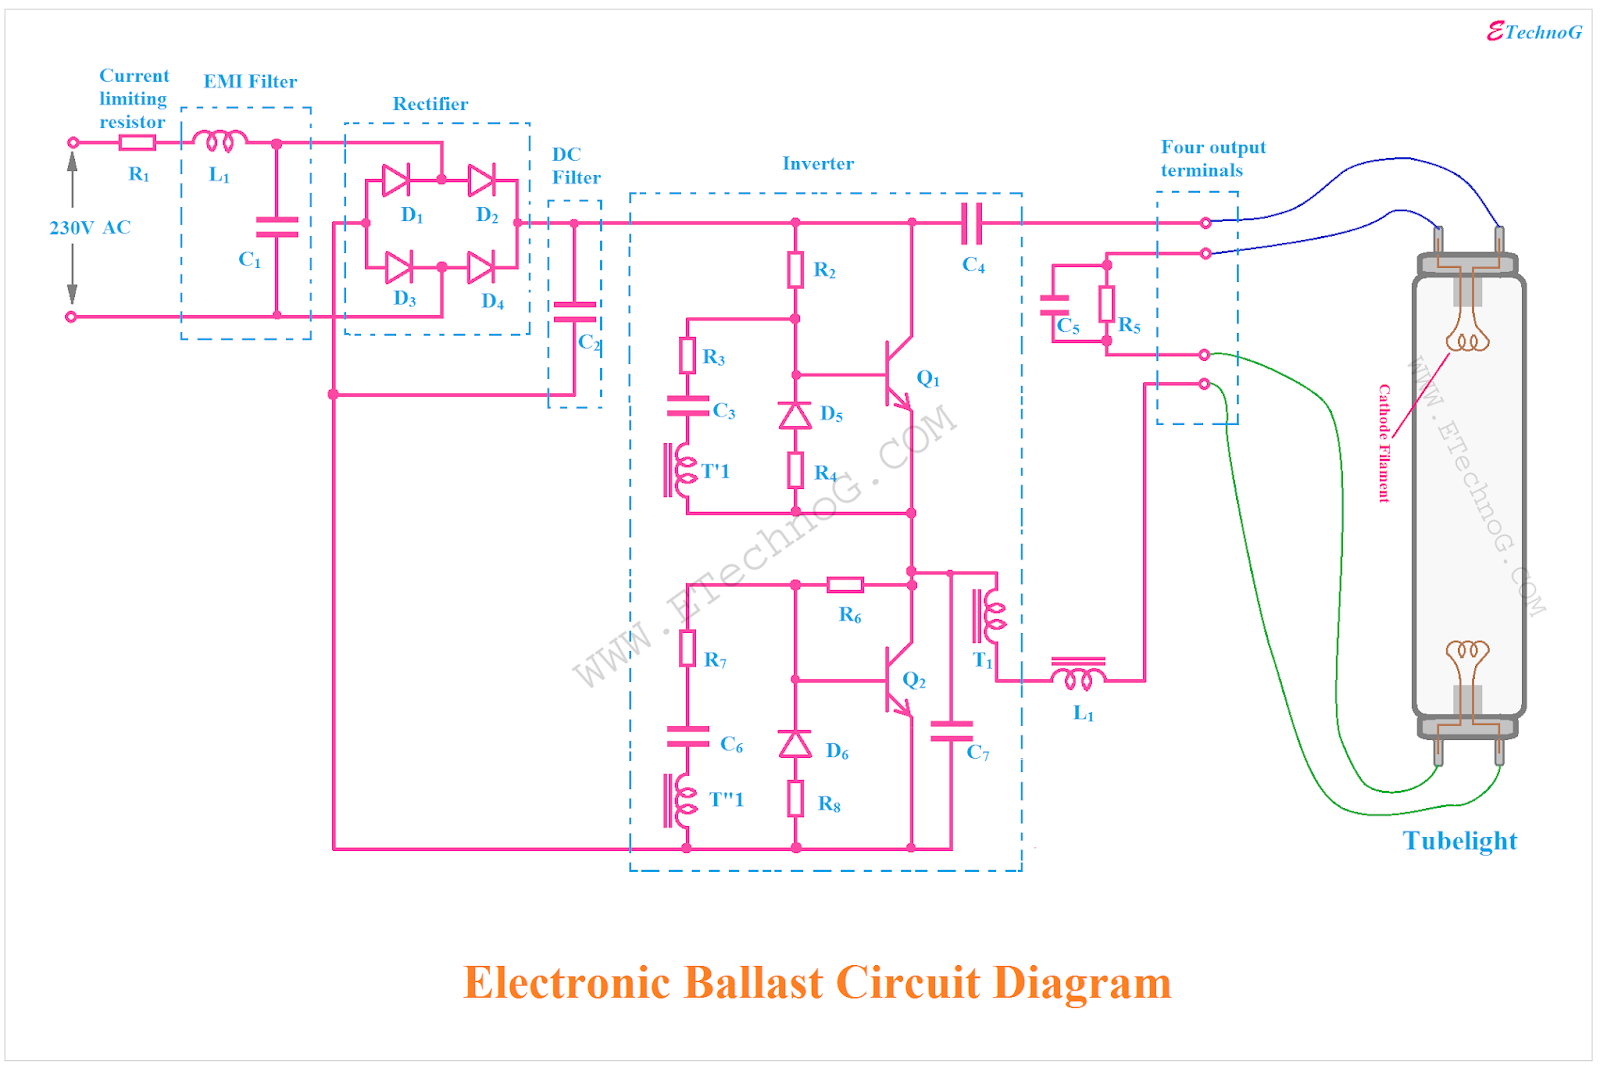 explained electronic ballast circuit diagram and working etechnog ballast light diagram ballast circuit diagram [ 1600 x 1076 Pixel ]